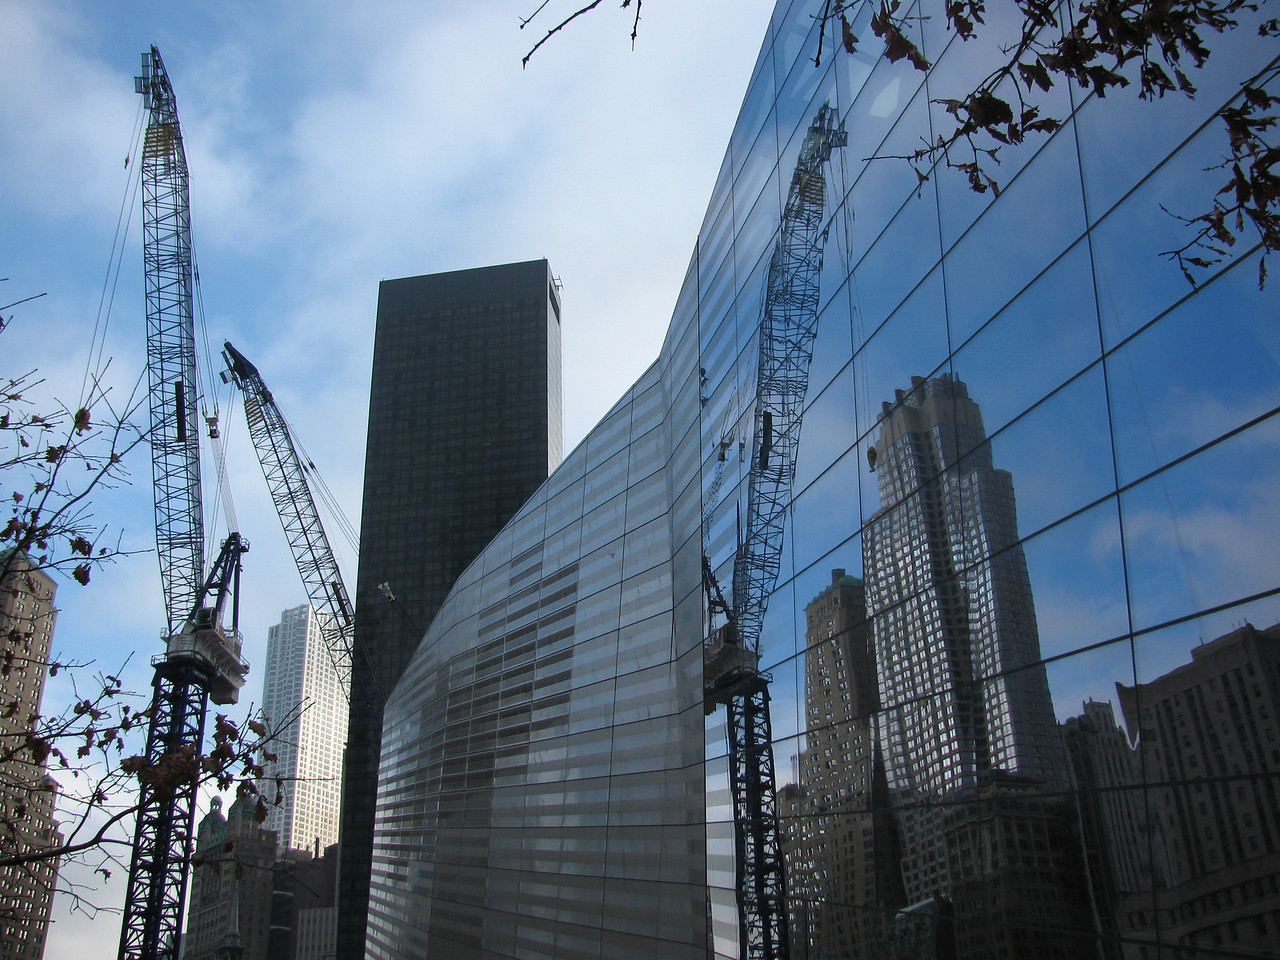 Scene of the construction at the 9-11 Memorial - the unopened museum is at the right.